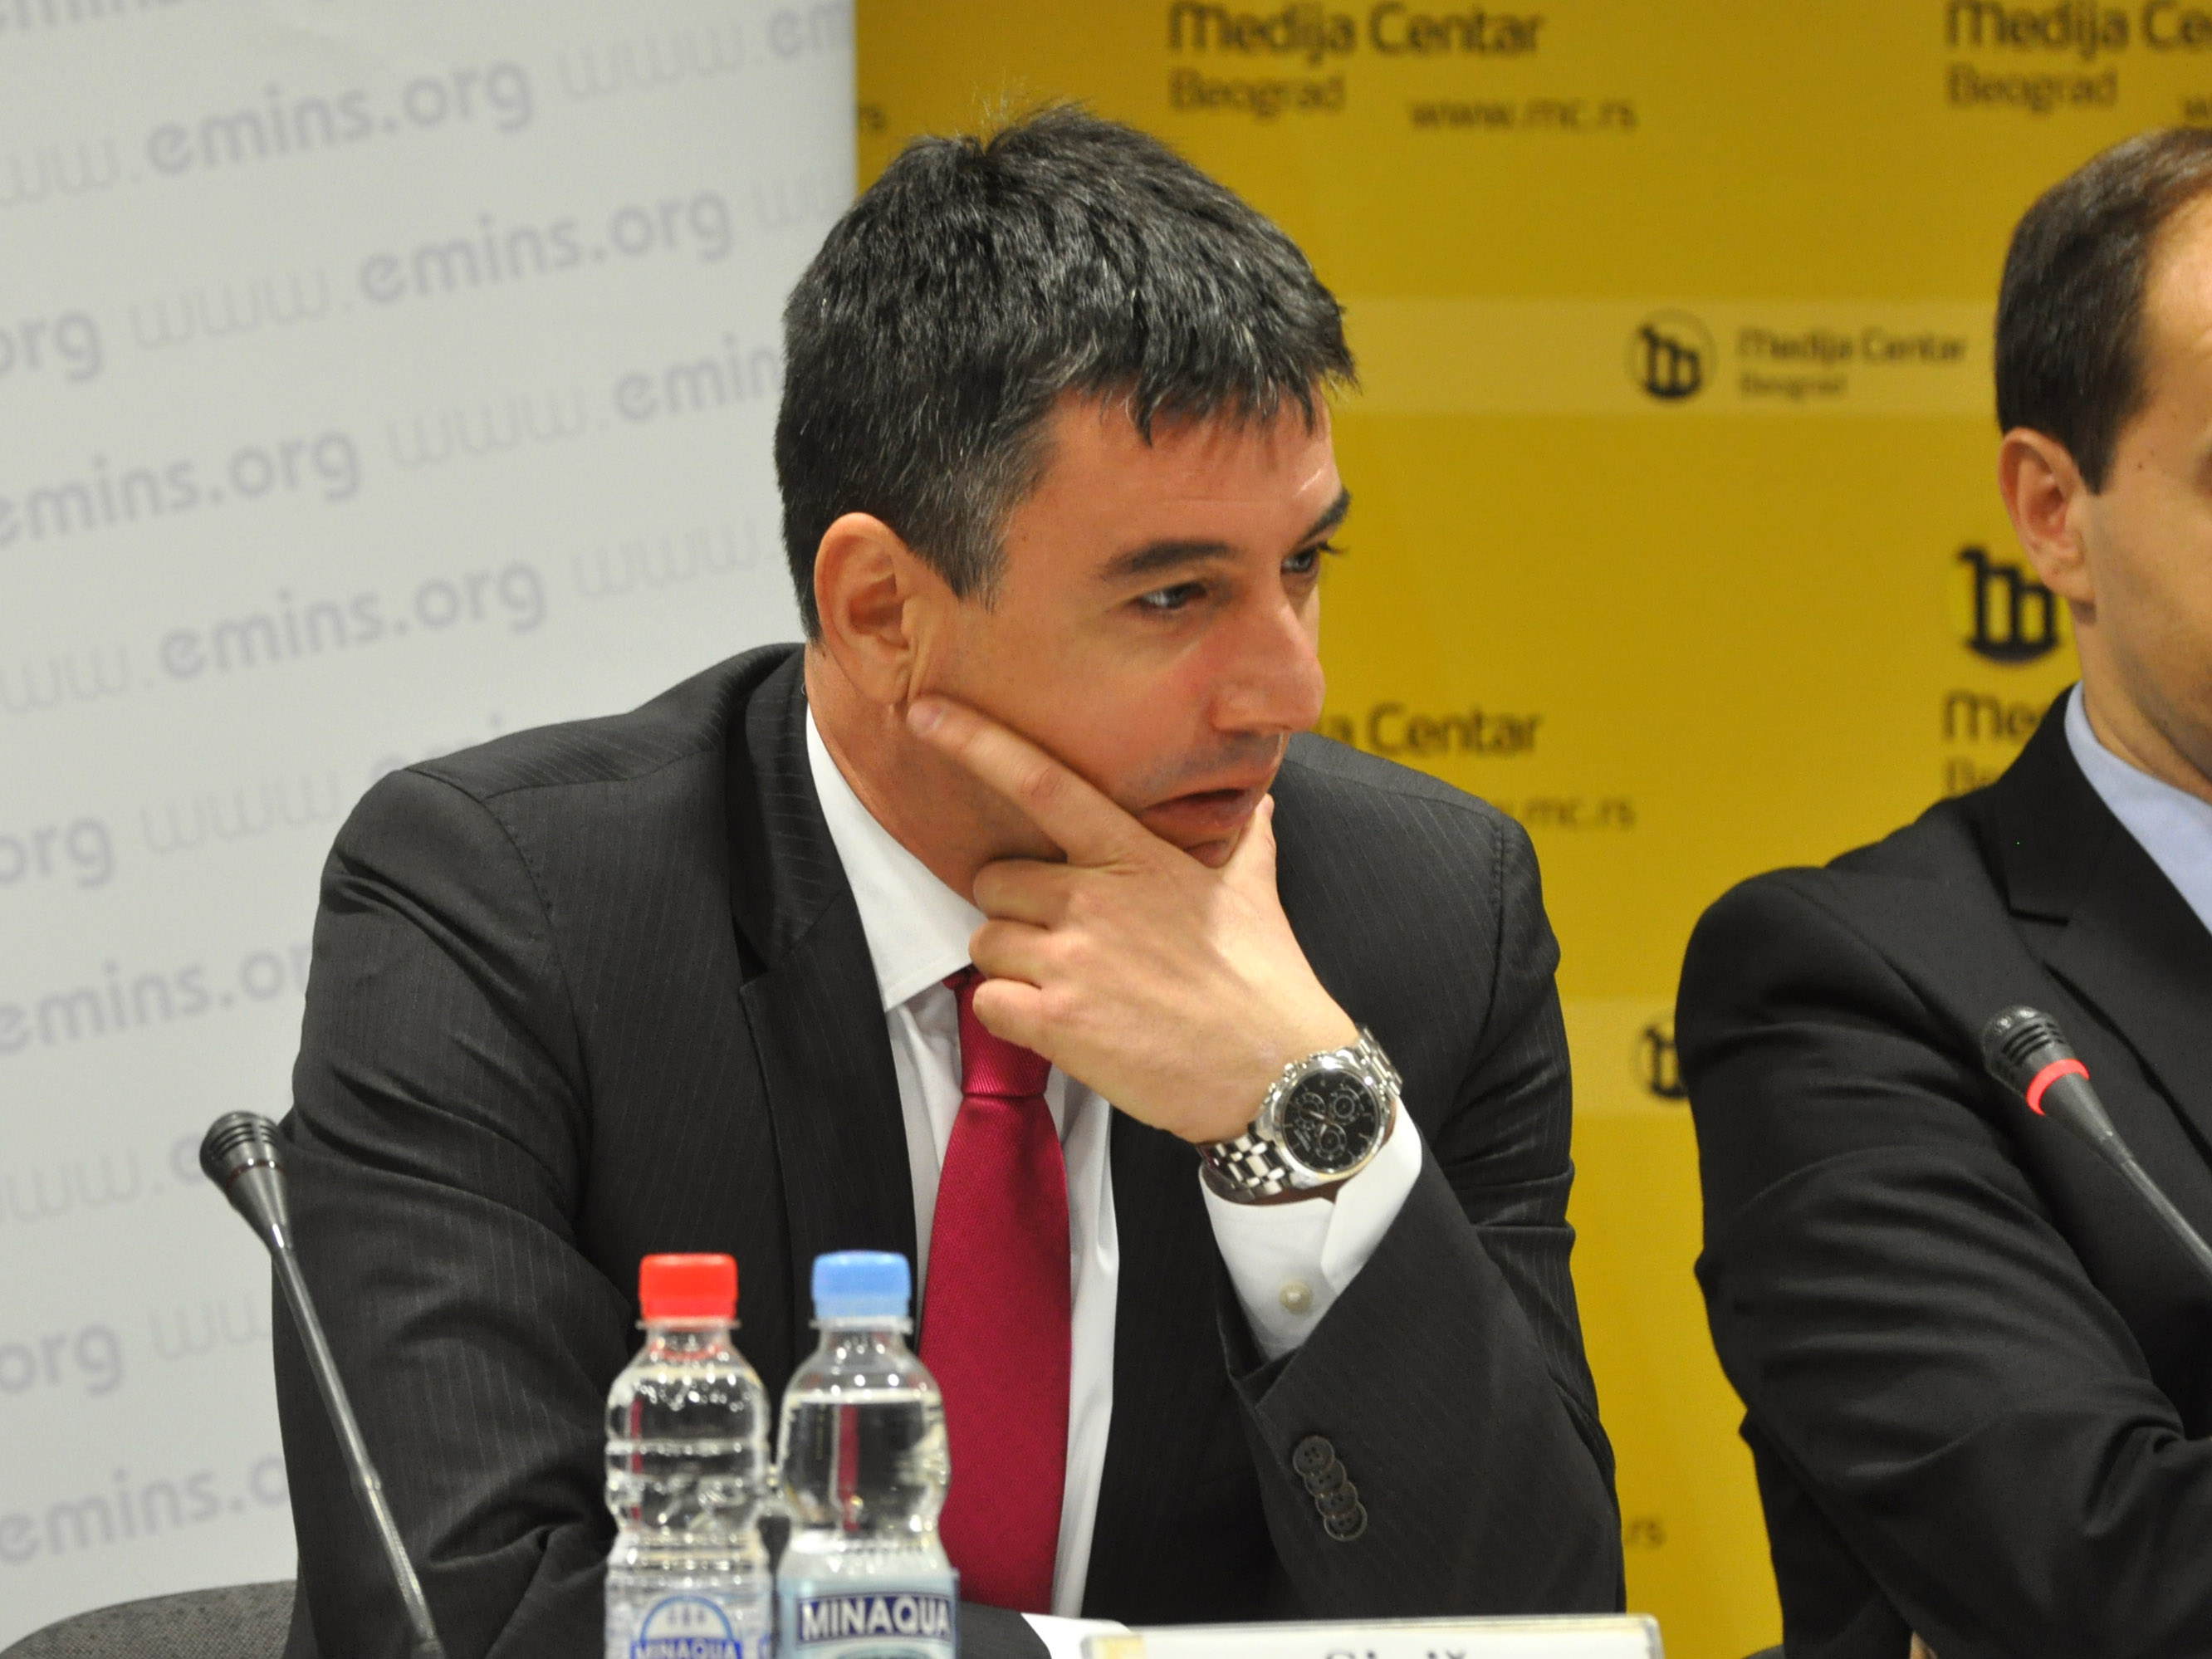 INTERVIEW - Listing best alternative to borrowing in SEE - Belgrade bourse CEO